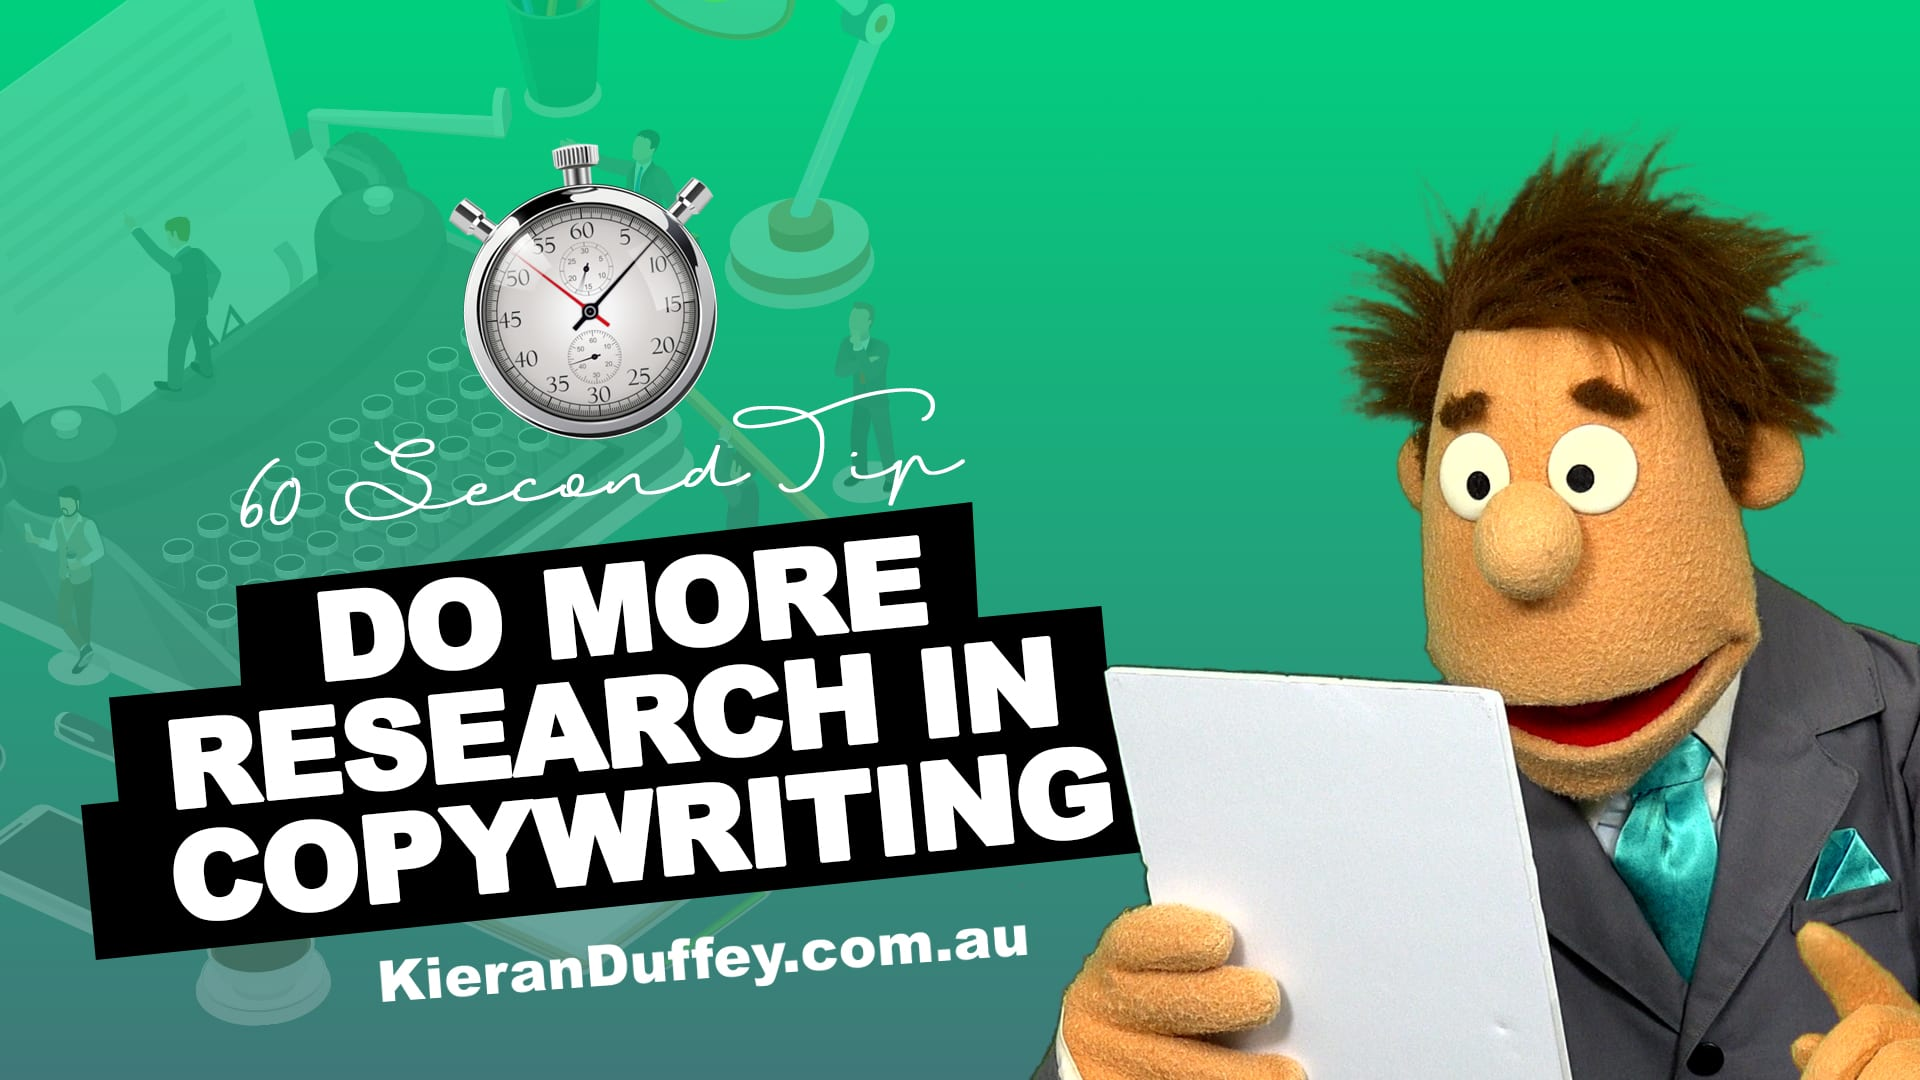 Video explaining research importance in copywriting